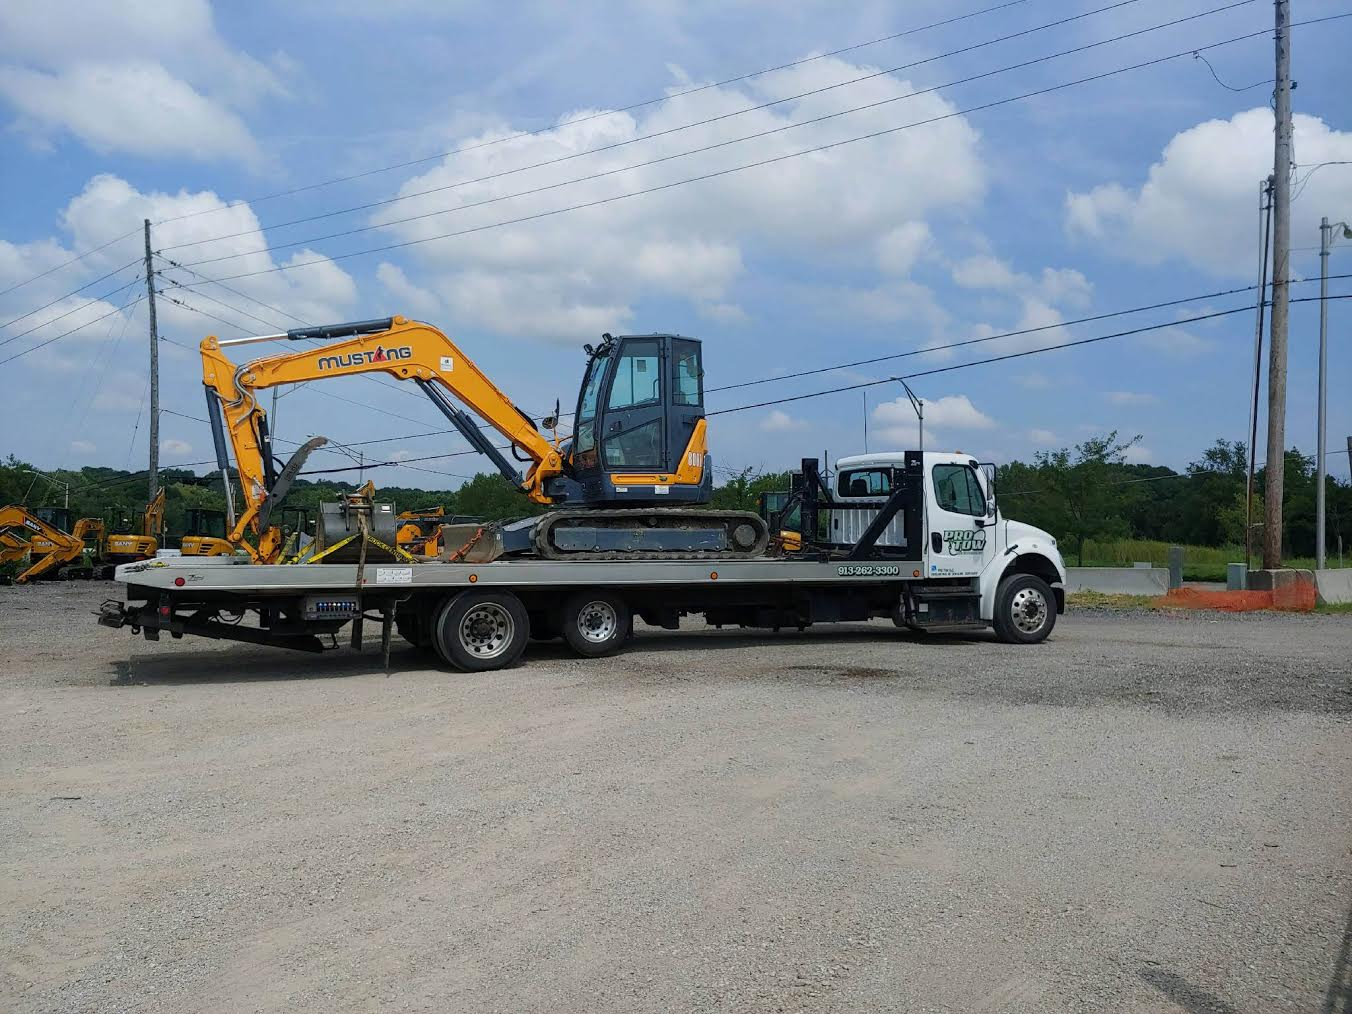 Pro Tow Auto Transport & Towing (8)